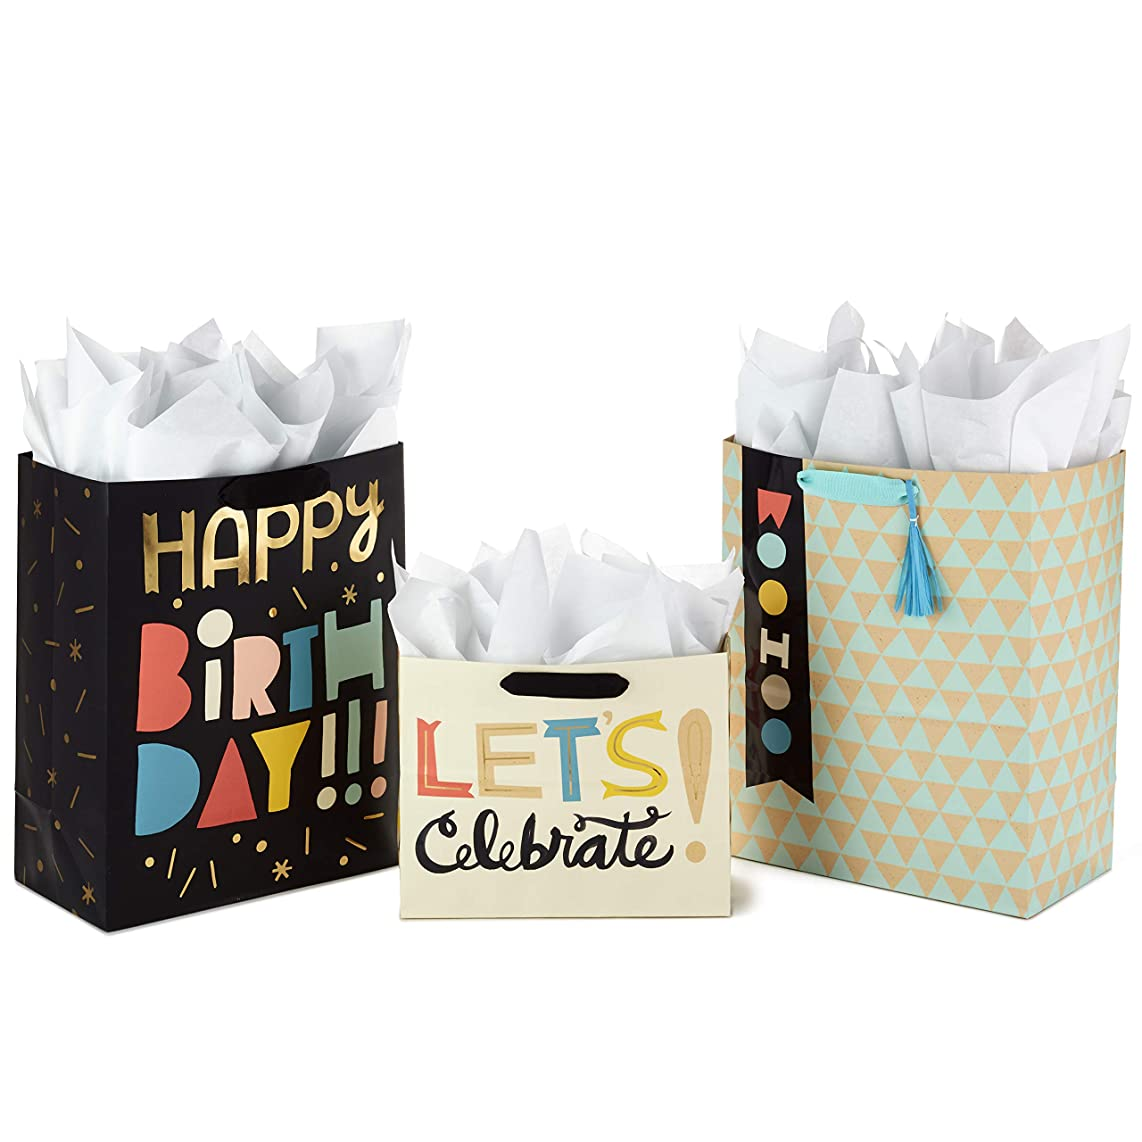 Hallmark Celebrate Gift Bags Assortment with Tissue Paper (Pack of 3 Large and Medium Gift Bags for Birthdays, Baby Showers, and More)